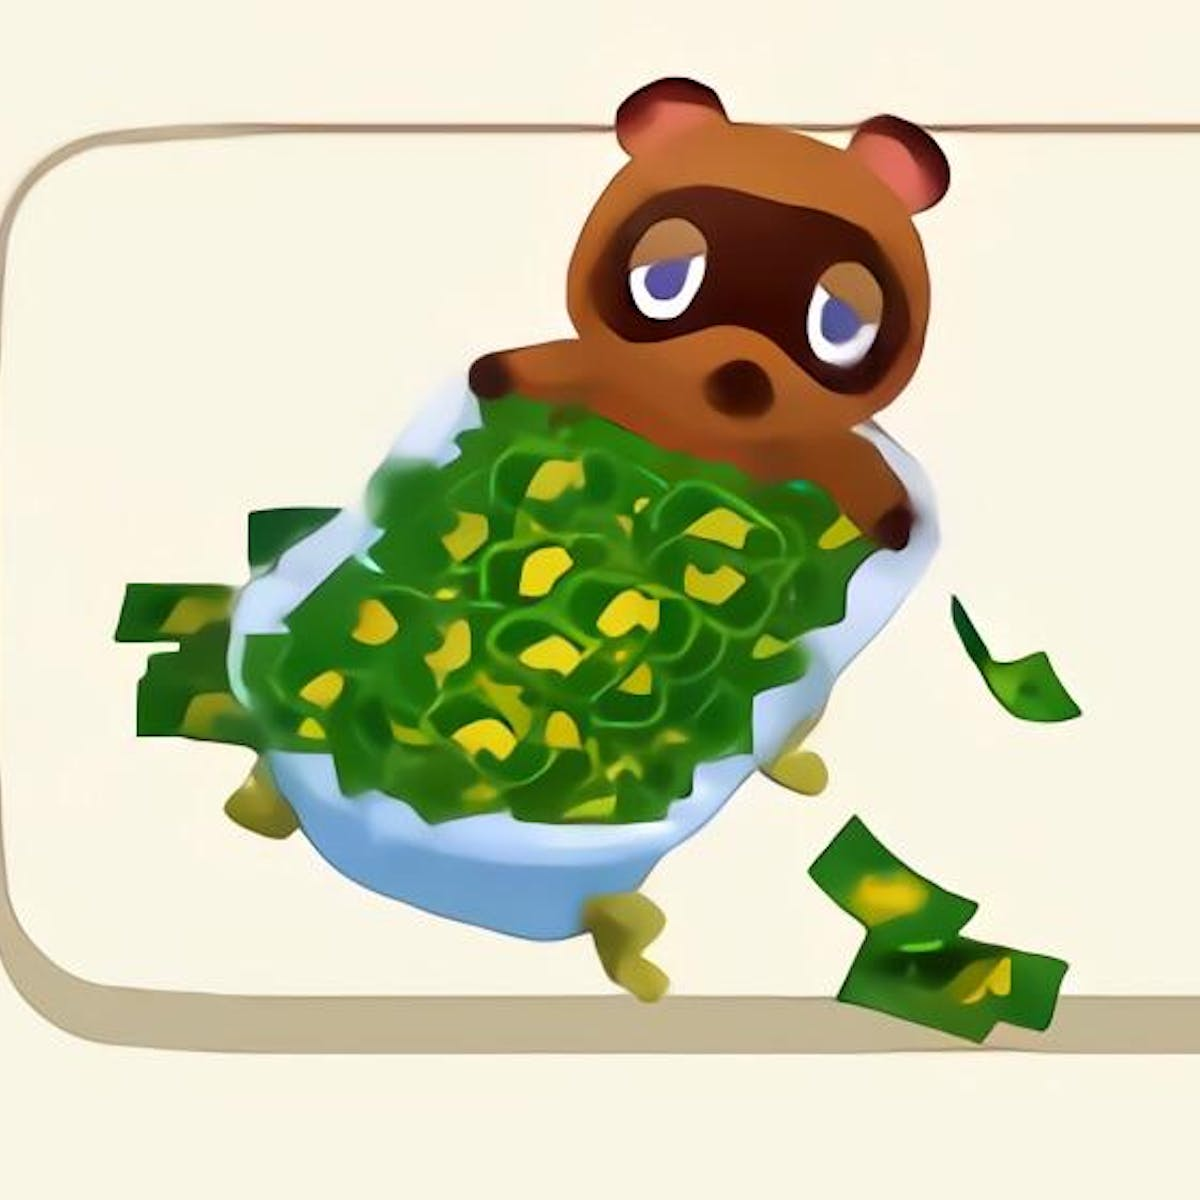 Why Animal Crossing's Tom Nook is an Evil Capitalist Villain